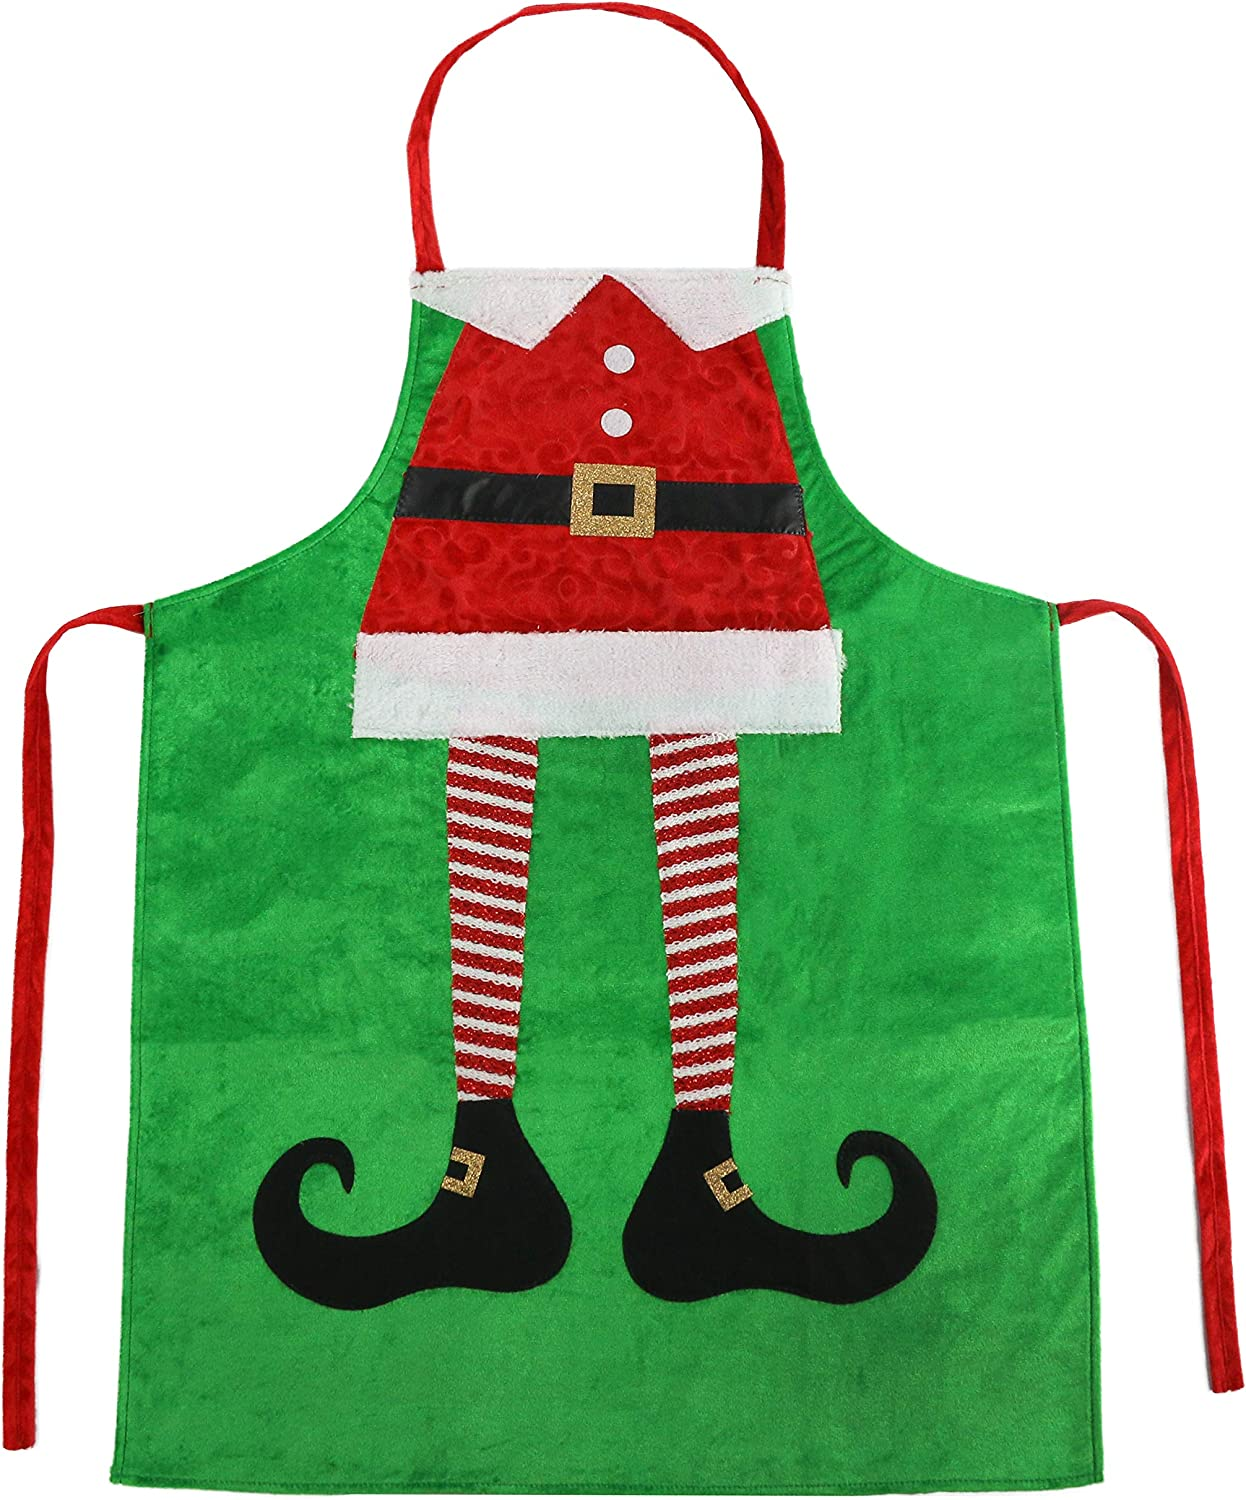 Athoinsu Christmas Apron Elf Leg Kitchen Chef Aprons Xmas Holiday Costume Party Supplies Gifts for Men Women Good for Cooking Gardening Baking  Green  2340